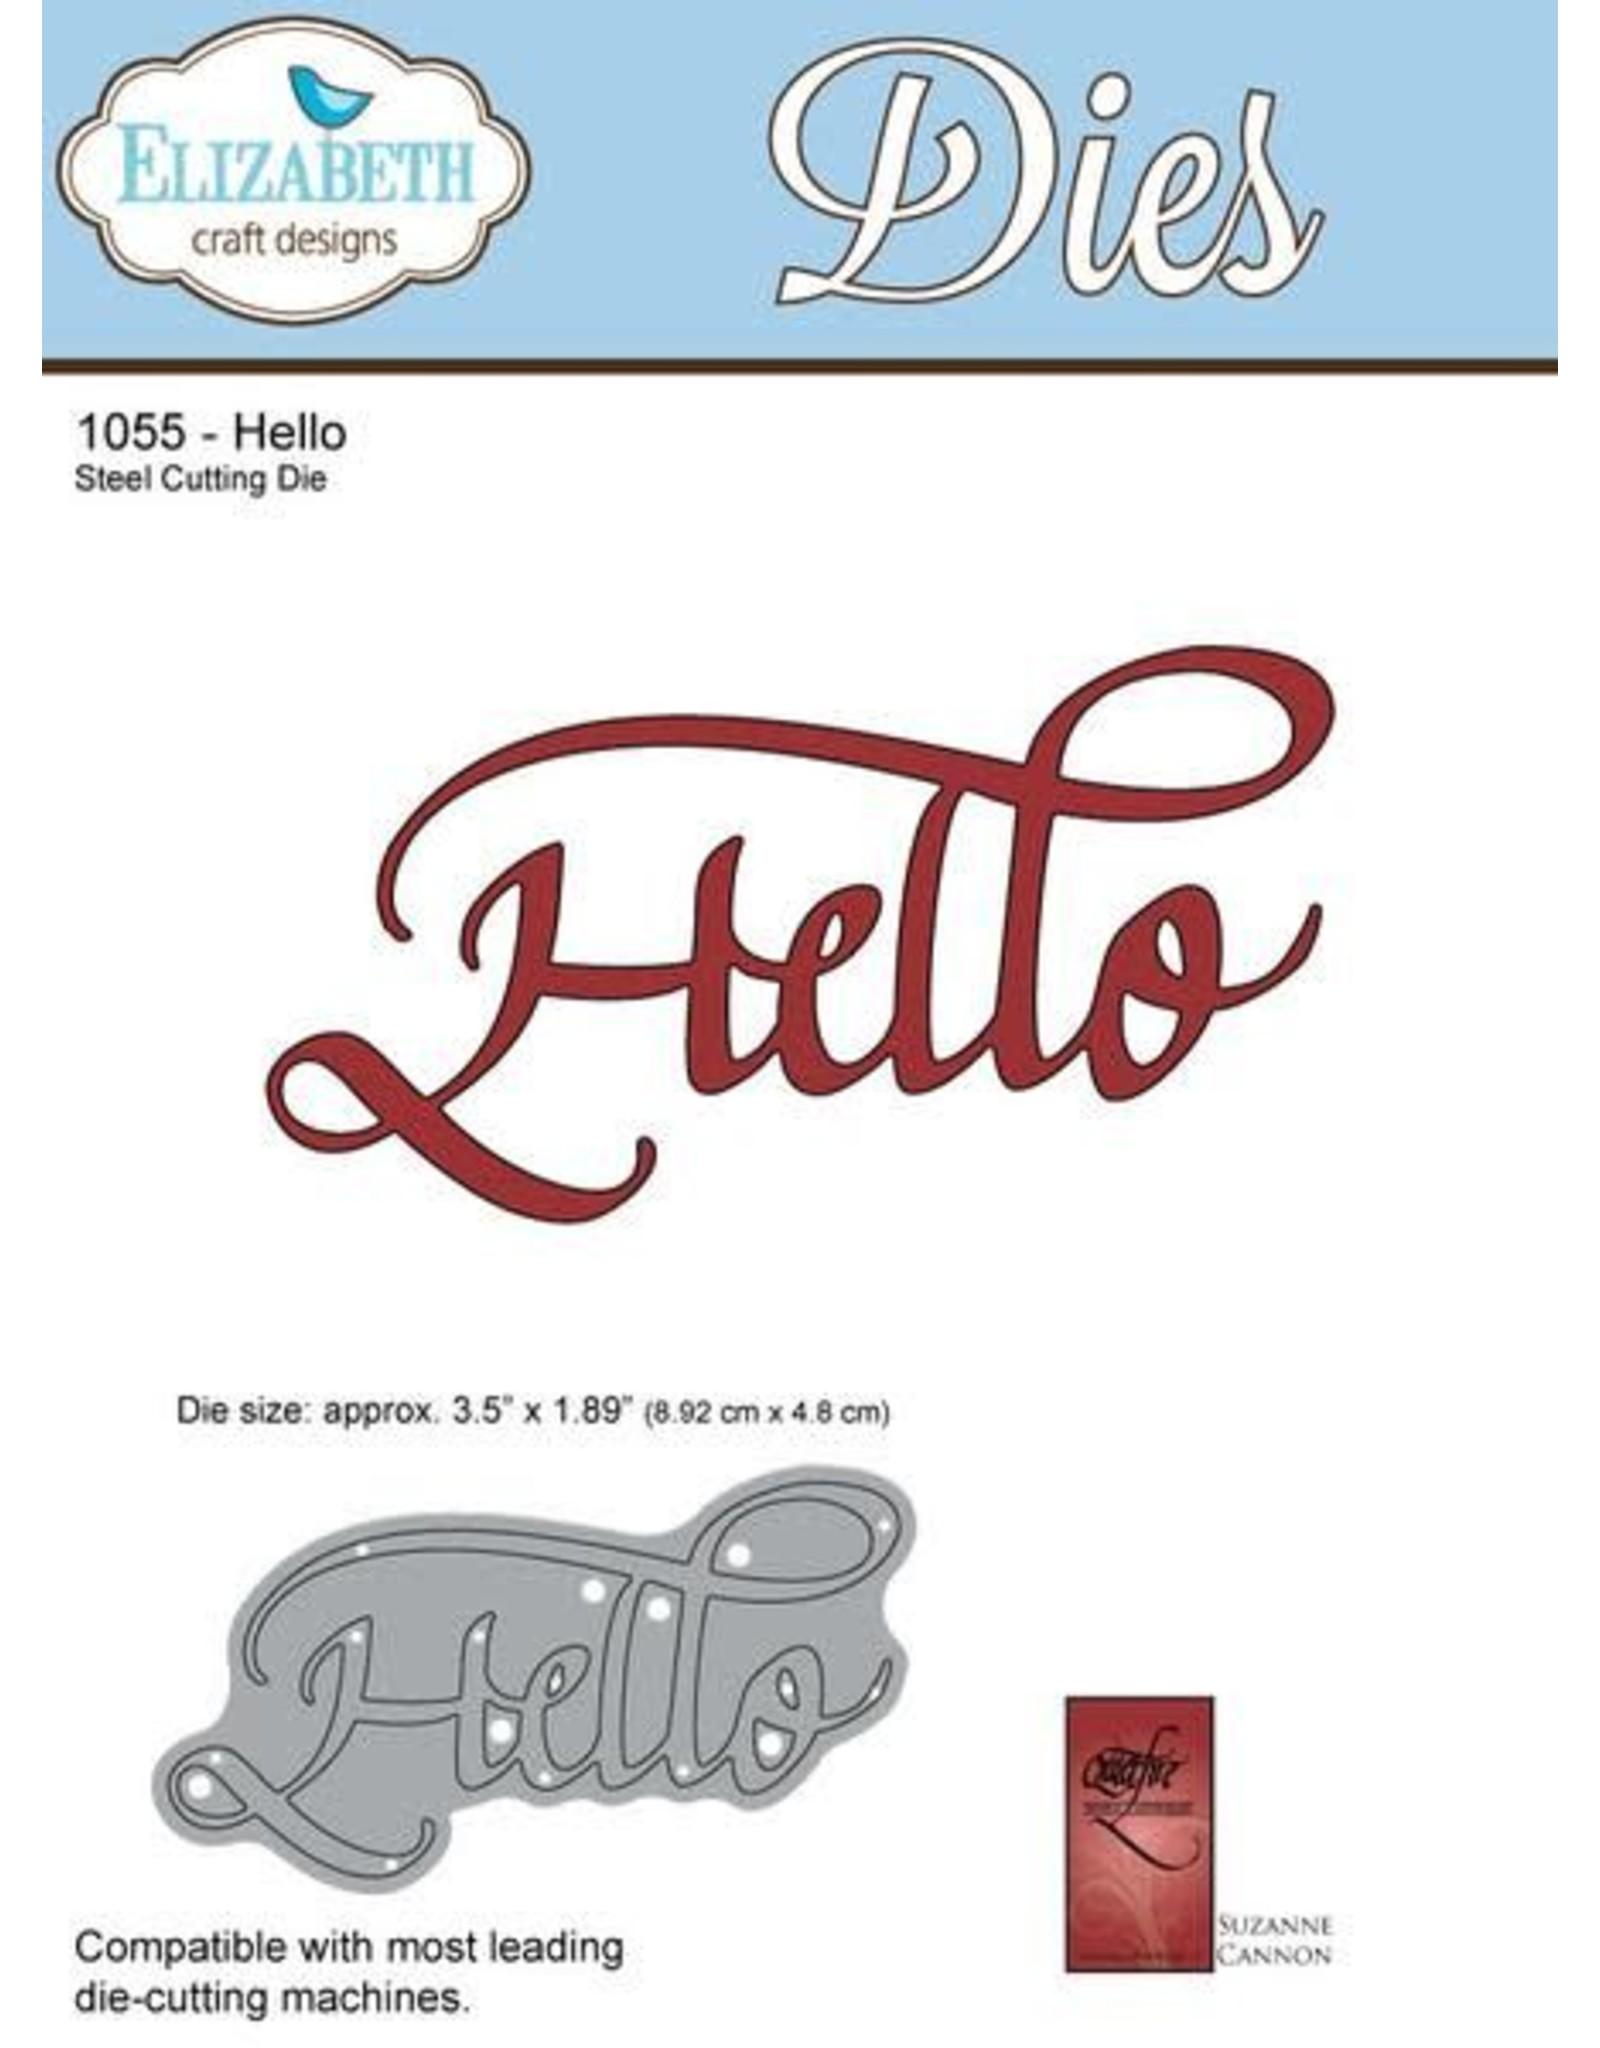 Elizabeth Craft Designs Elizabeth Craft Designs dies A Way With Words, Hello 1055